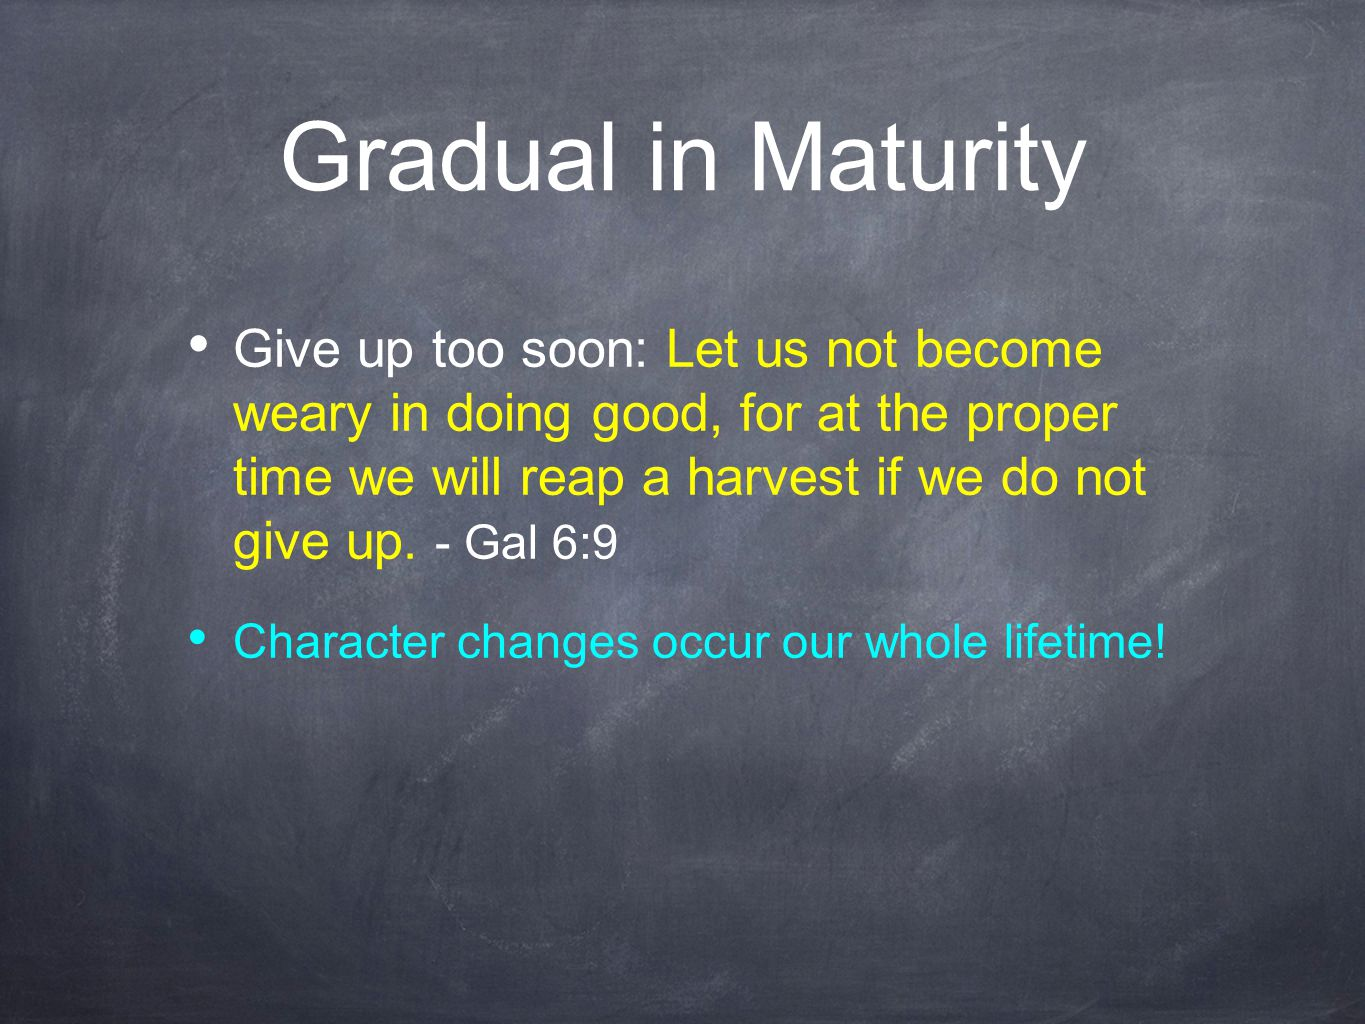 Gradual in Maturity Give up too soon: Let us not become weary in doing good, for at the proper time we will reap a harvest if we do not give up. - Gal